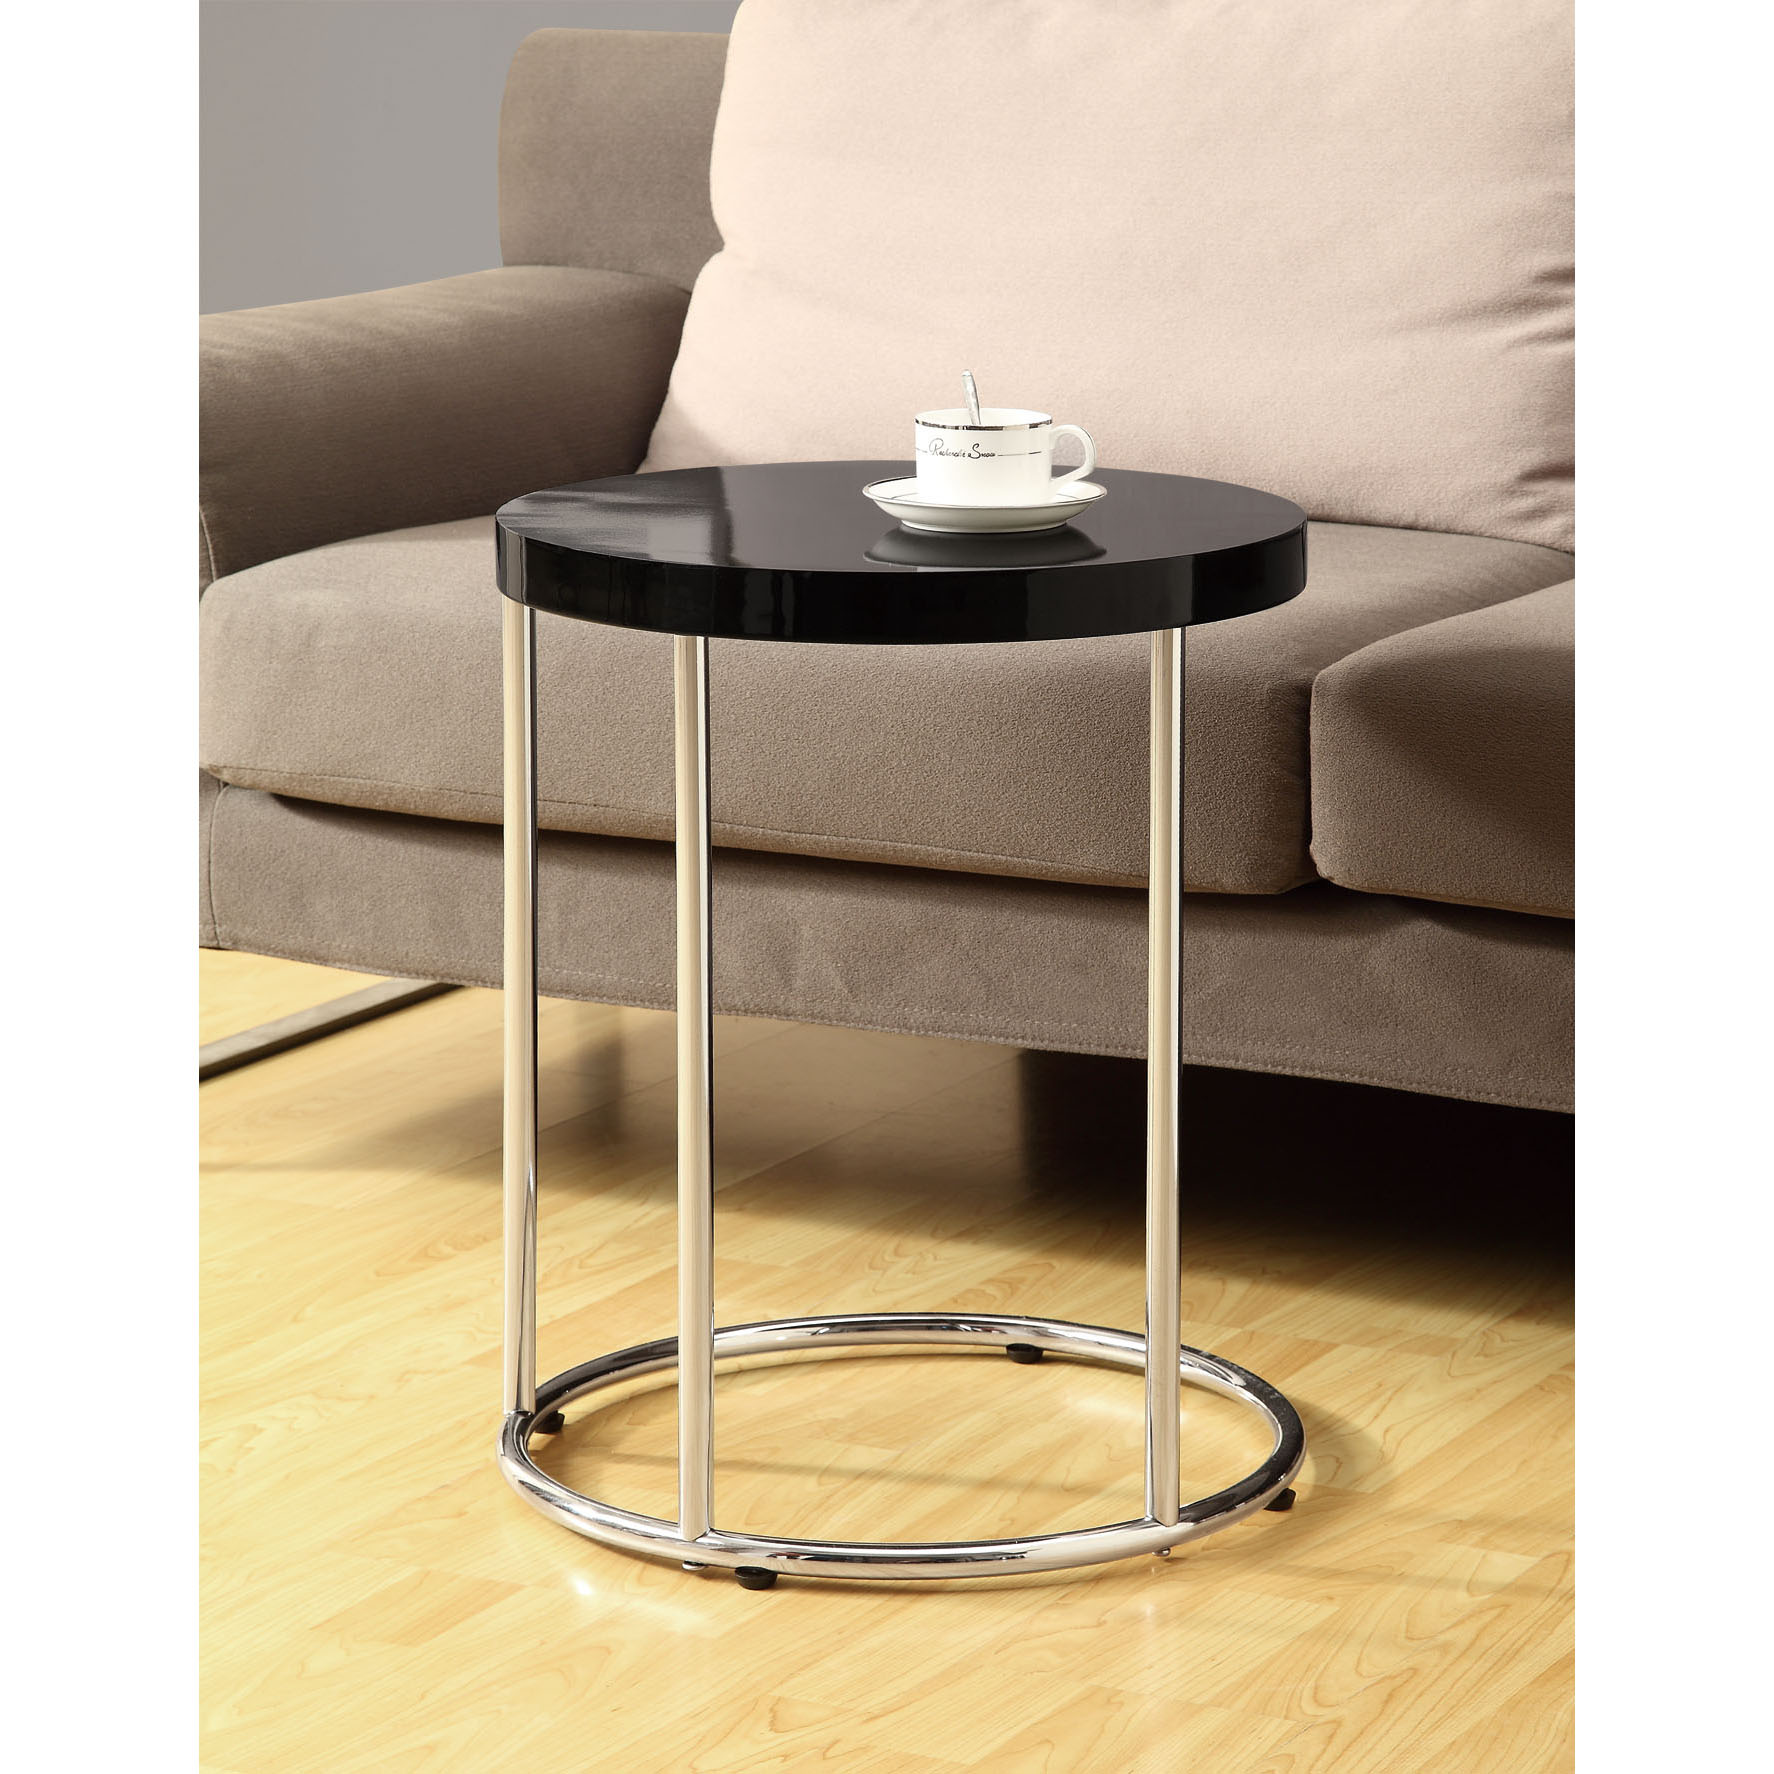 design metal accent table with cabinets contemporary elegant glossy black chrome free shipping today drum lucite waterfall coffee height console behind sofa home decor counter